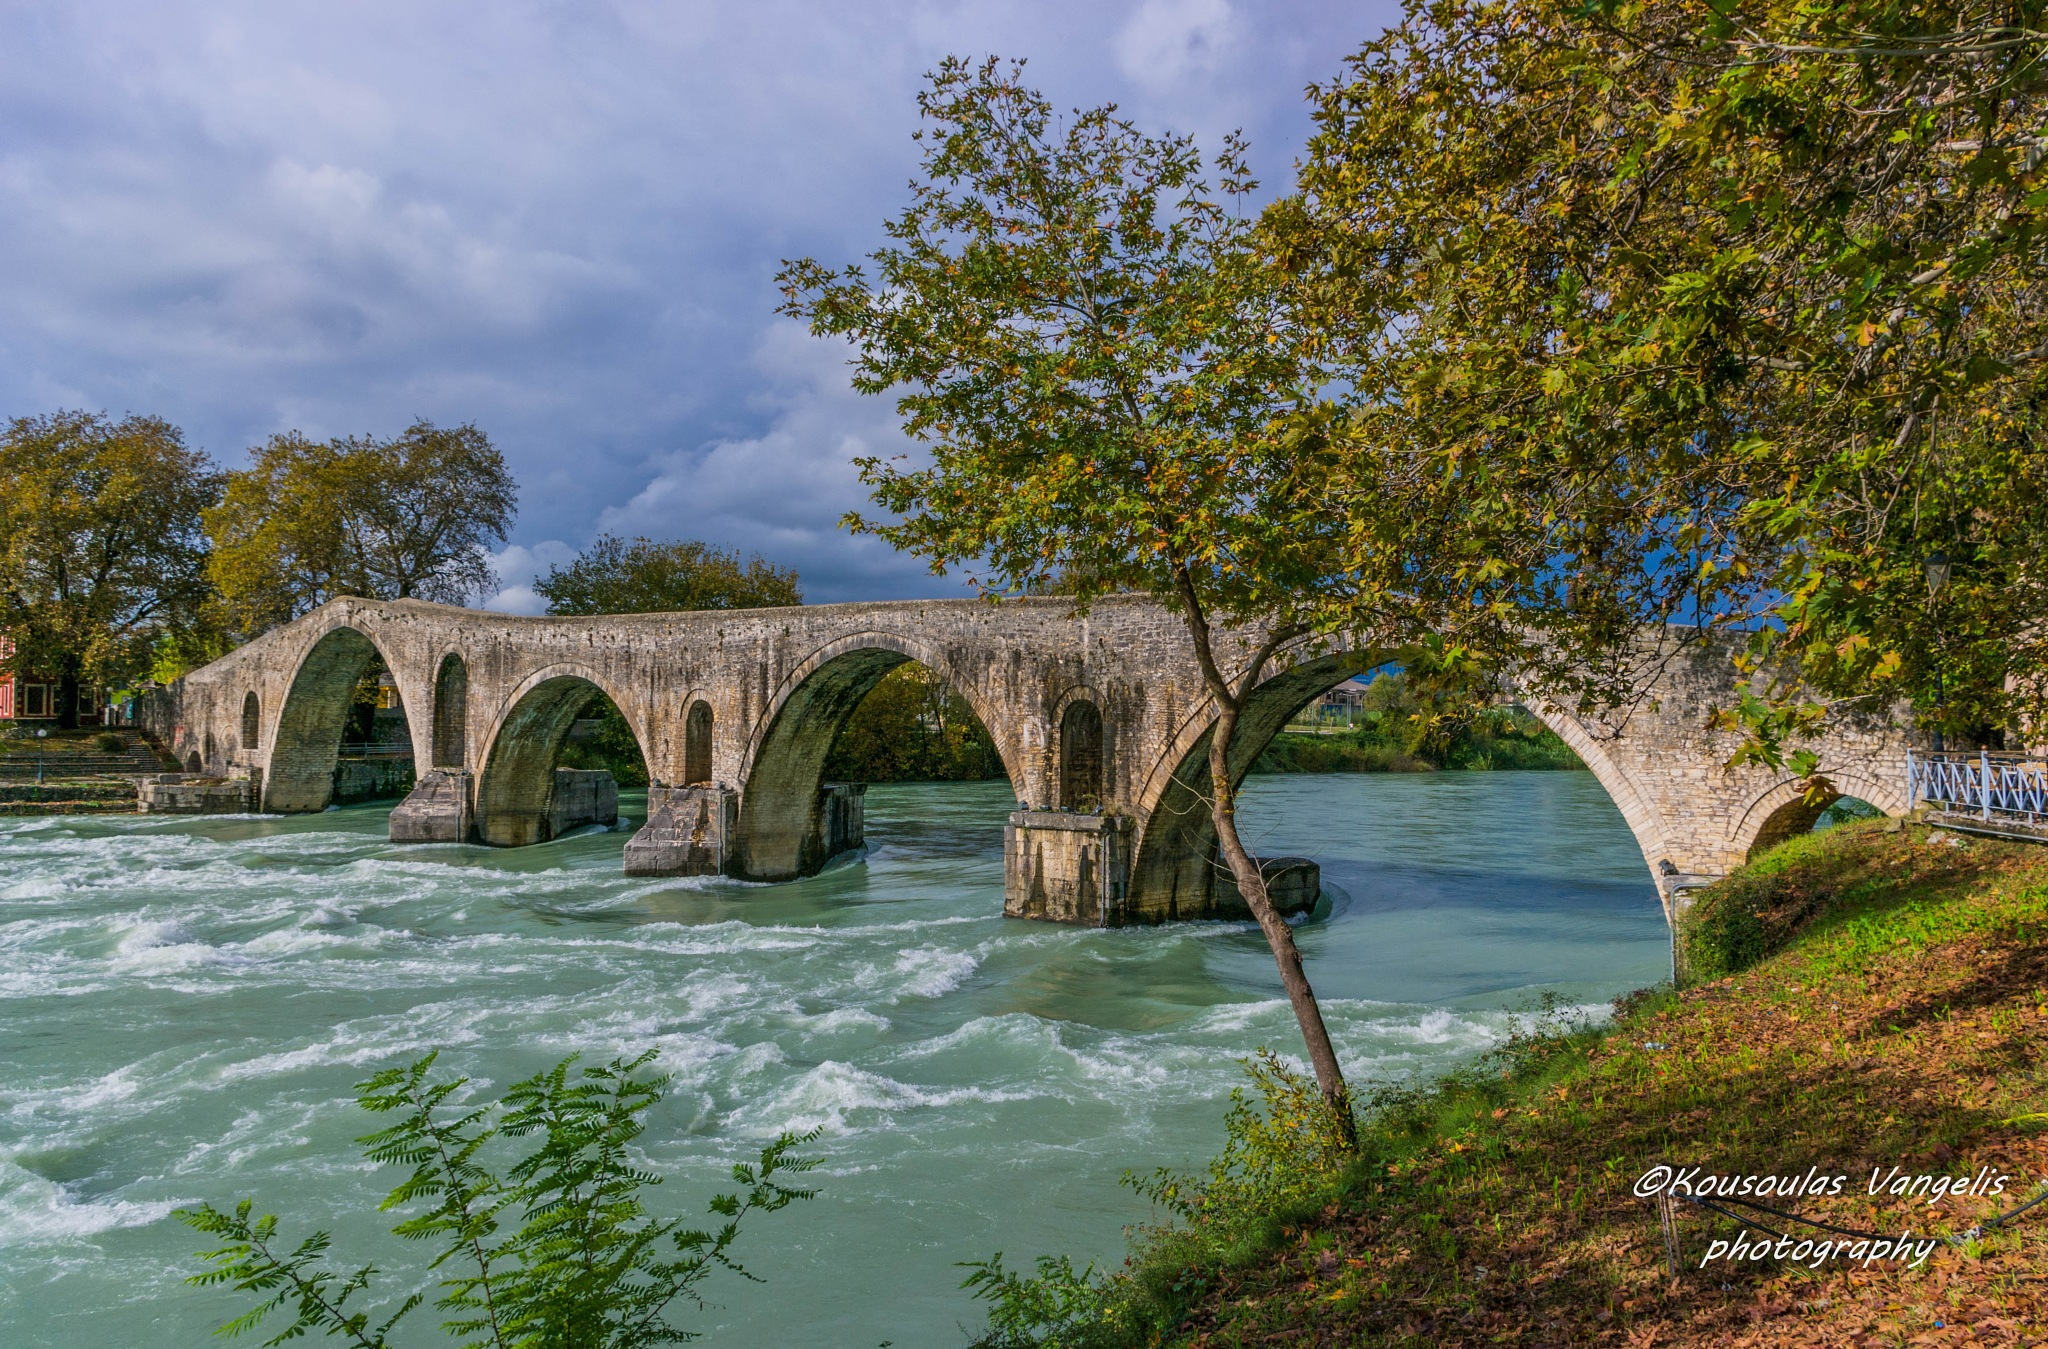 The bridge of Arta by kousoulas vangelis